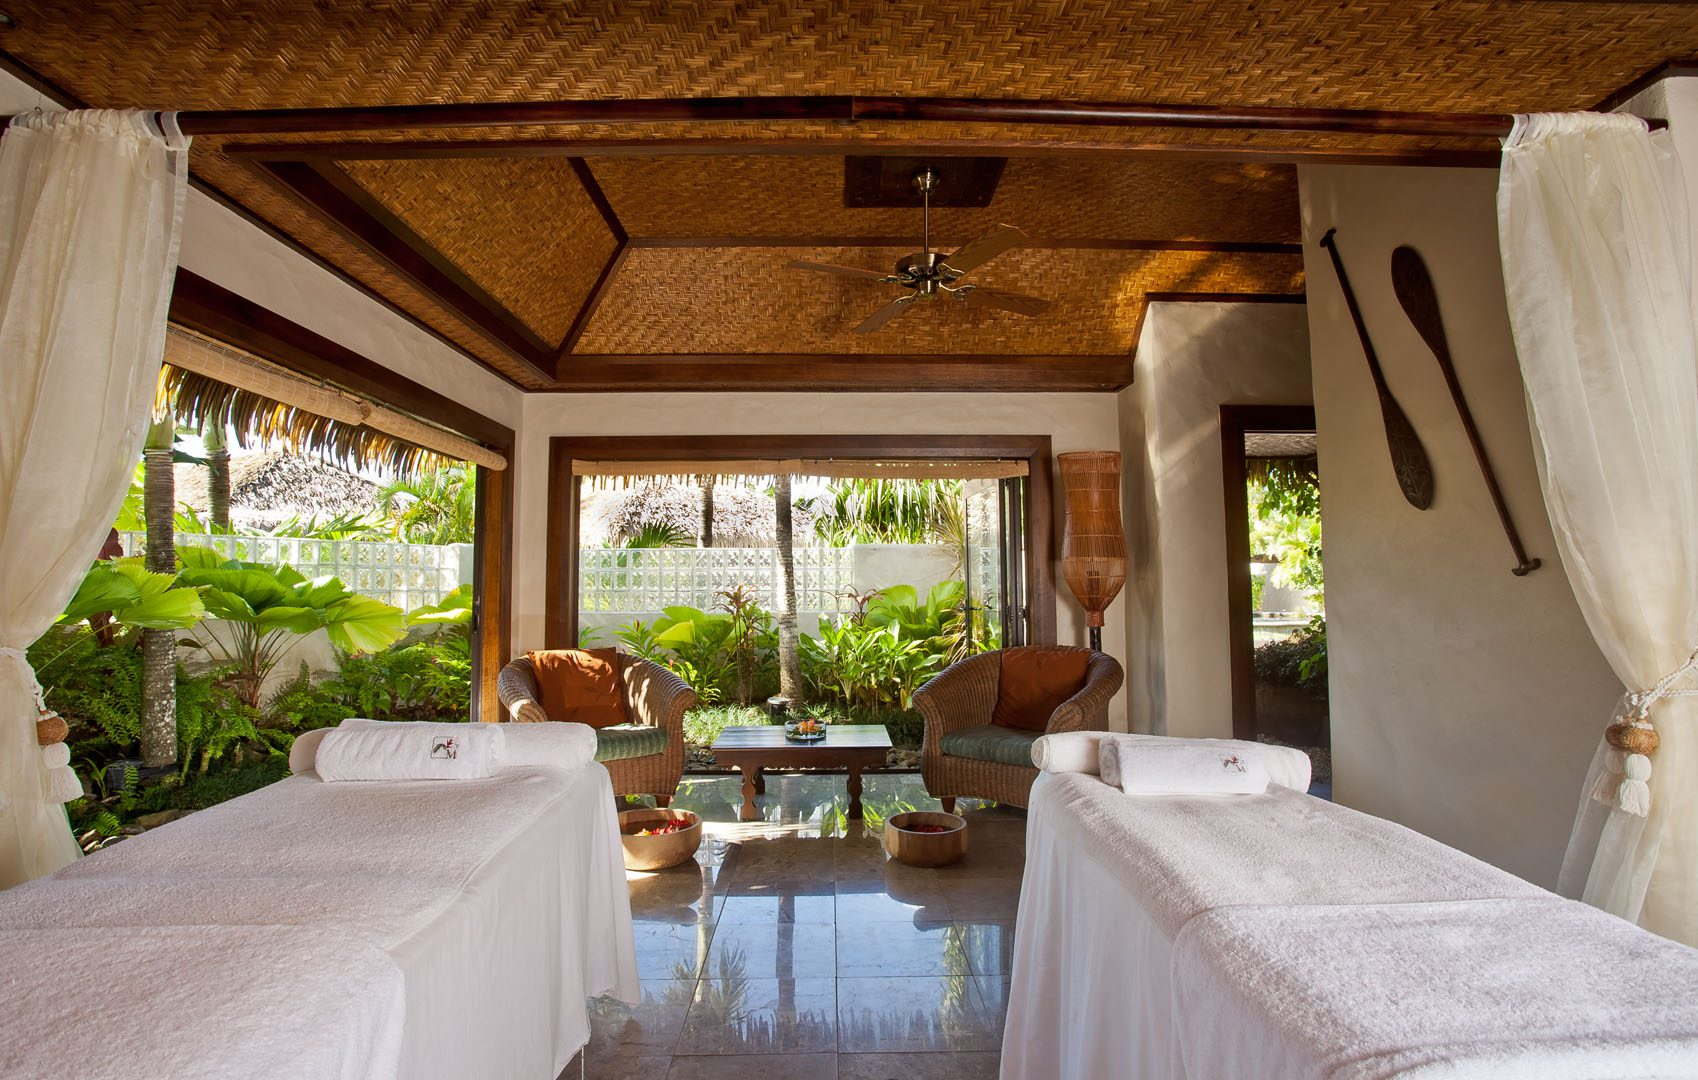 Luxurious spa with Polynesian inspired decor, looking out to the lush tropical gardens